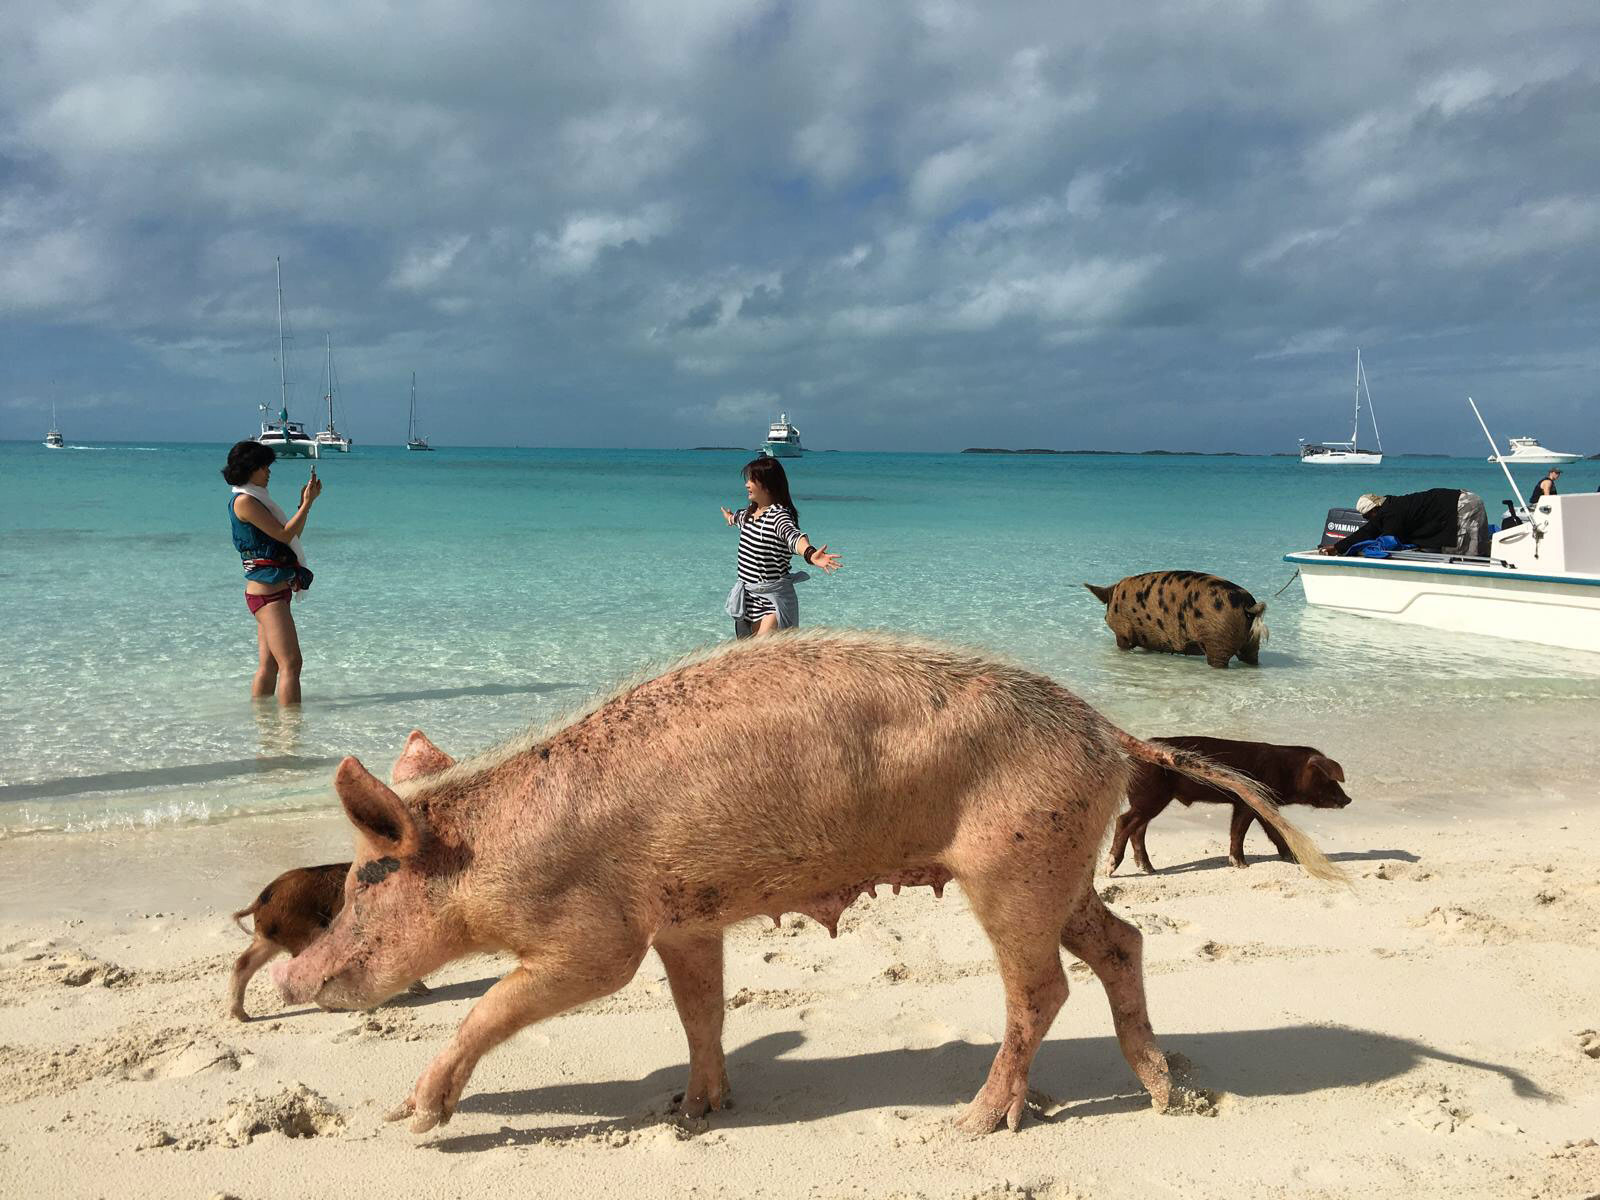 Bahamas' swimming pigs head to boats in hopes of food | CNN Travel